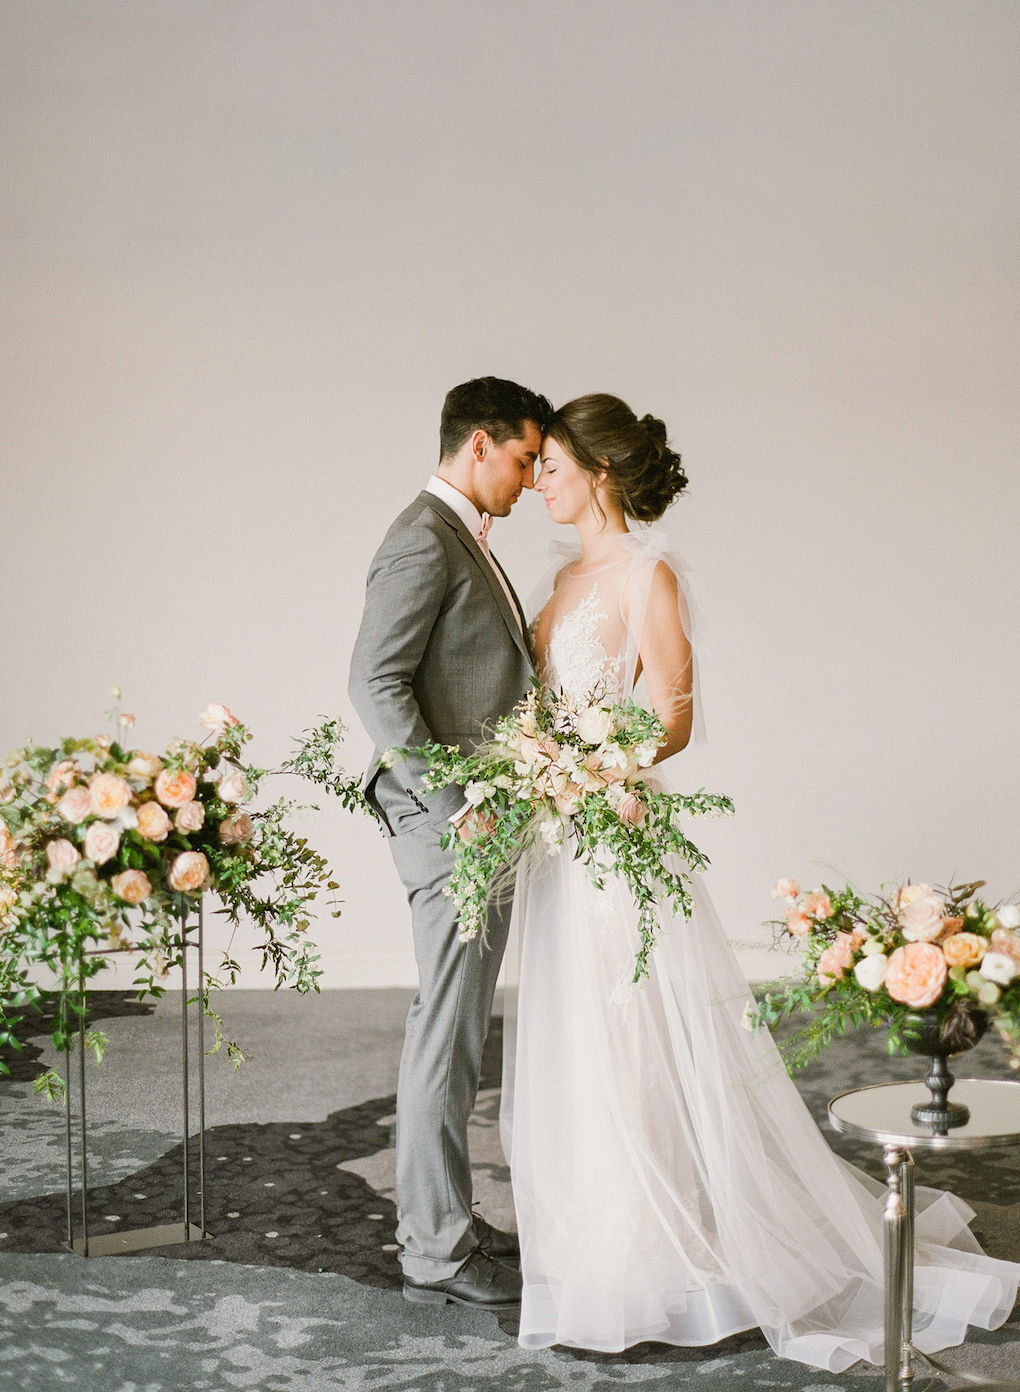 Indoor ceremony options: Soft and Subtle Palettes of Spring Blossoms | Editorial Shoot at The Renaissance Pittsburgh by Exhale Events. See more inspiration at exhale-events.com!